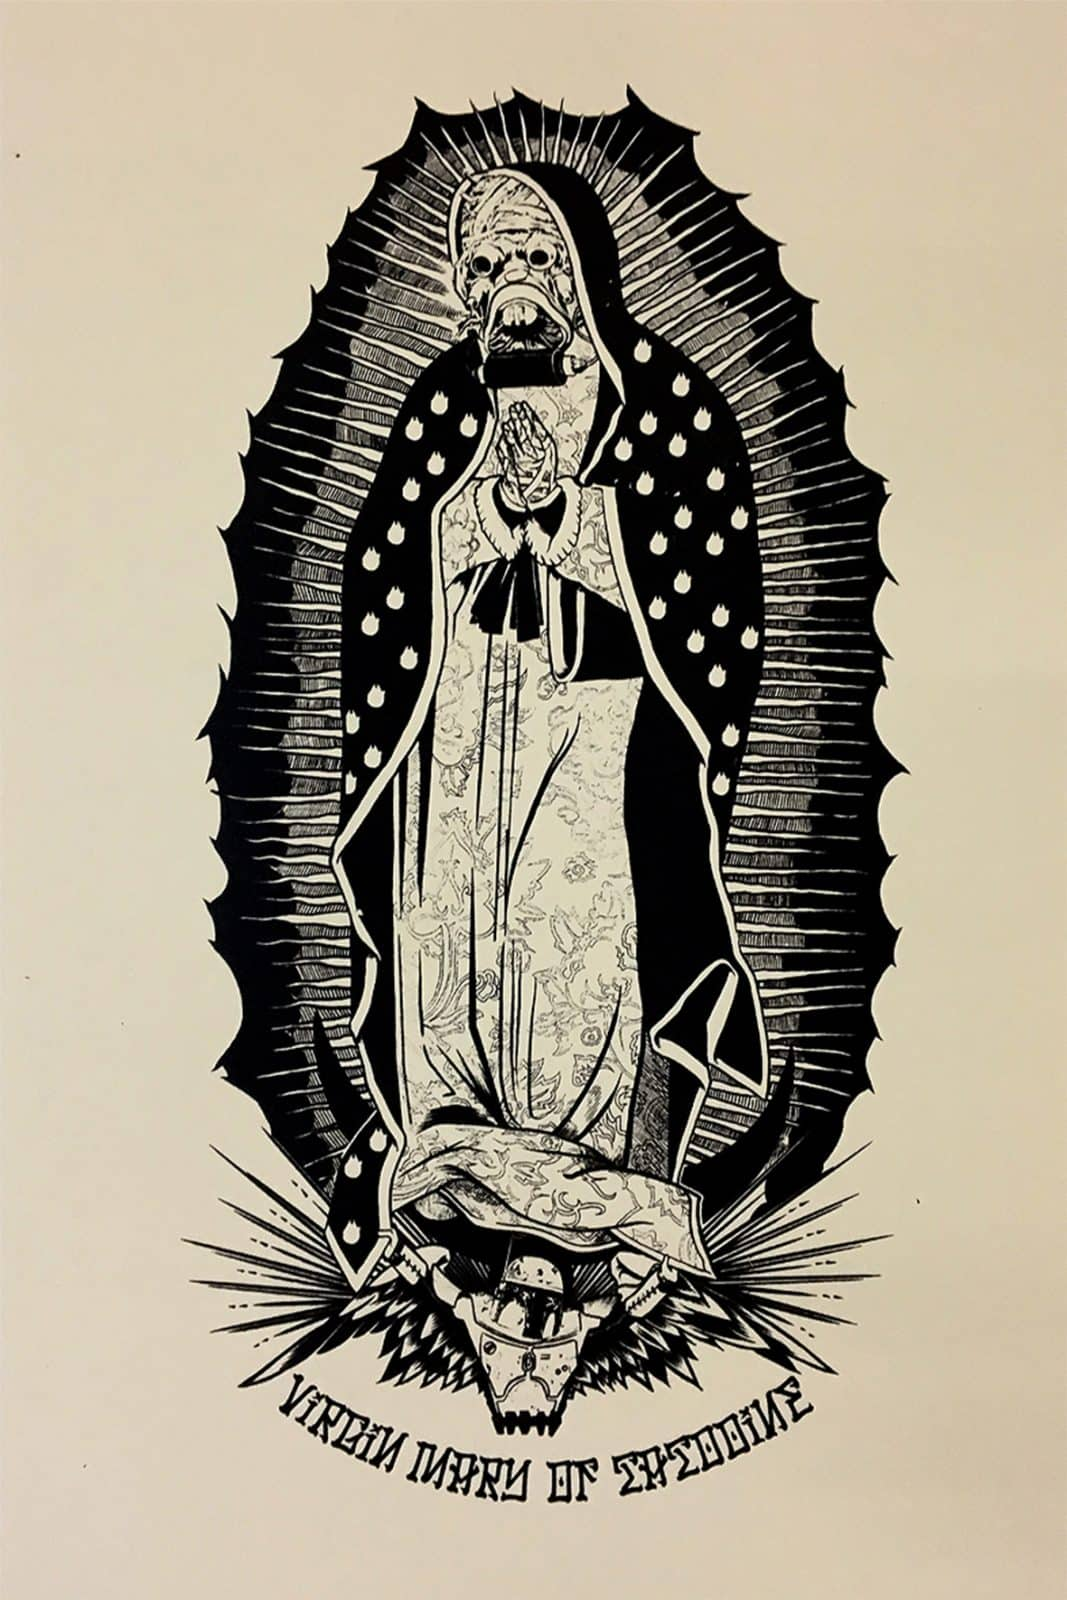 Virgin Mary of Tatooine - Artprint